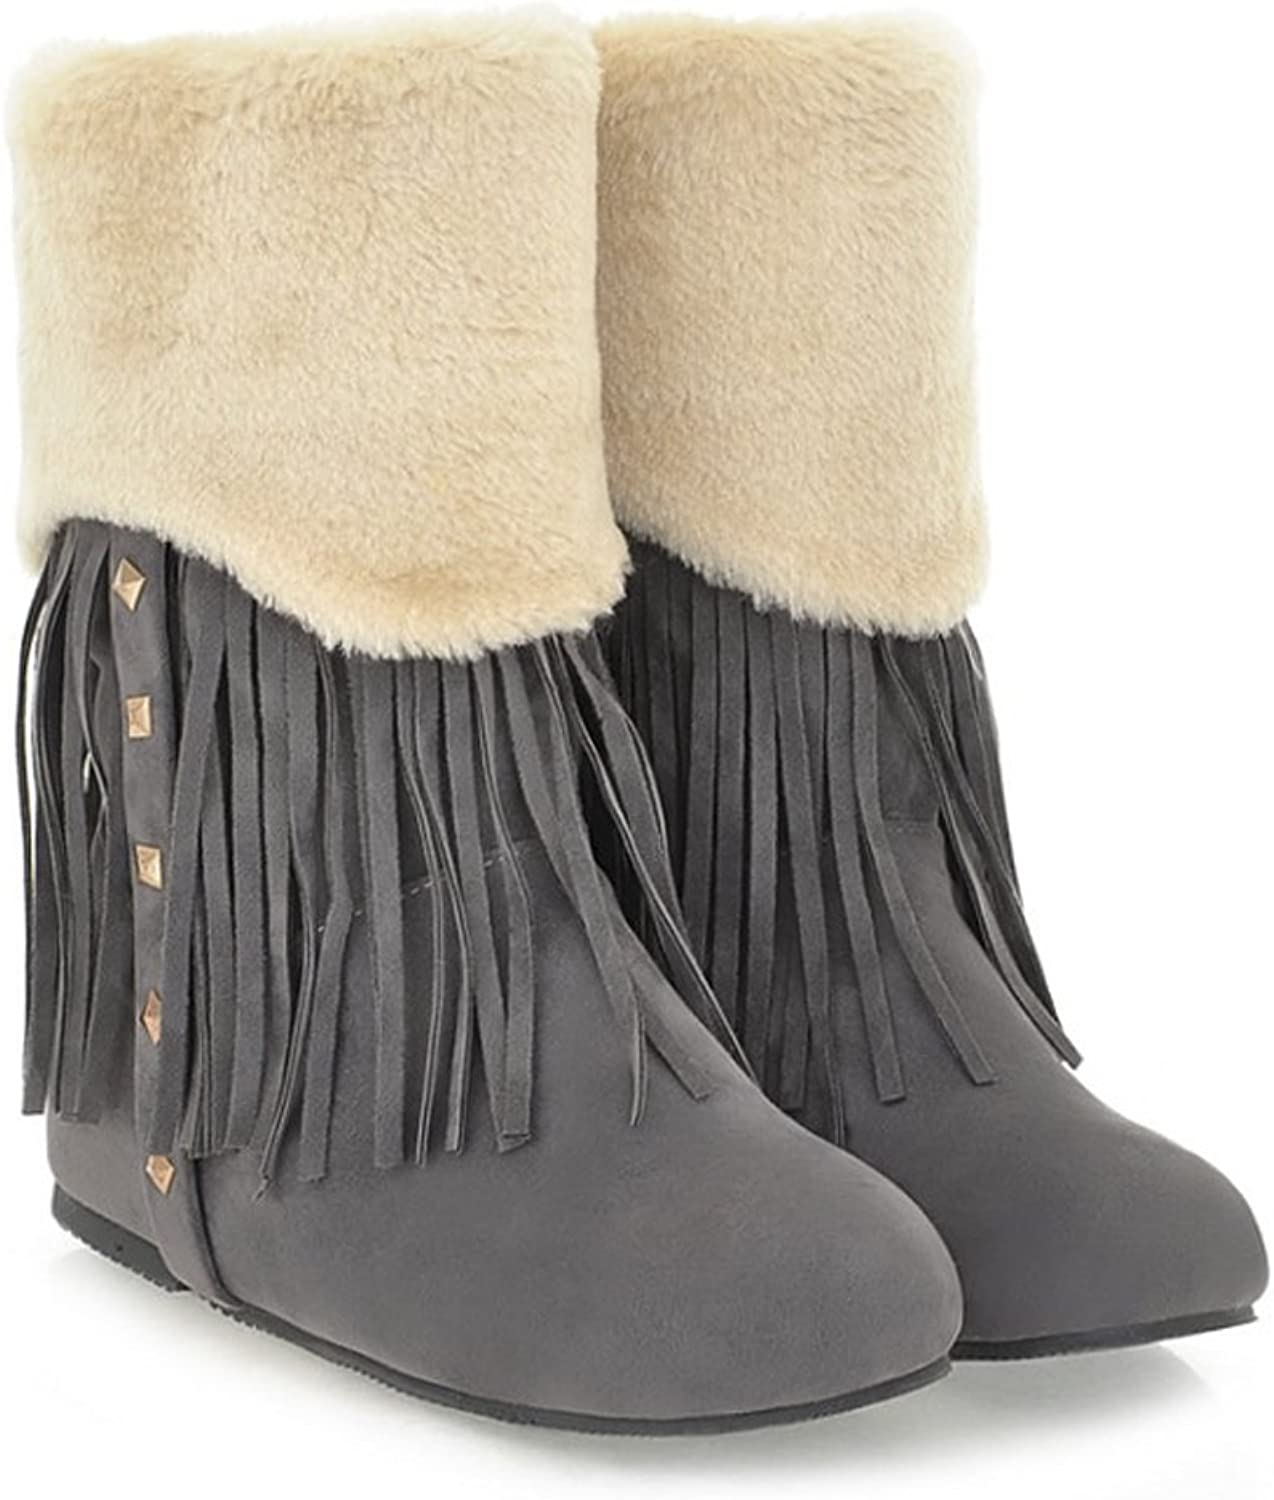 QZUnique Women Boots Increased Hidden Heel Flat Ankle Booties with Tassels and Rivets Mid-Calf Snow Boots